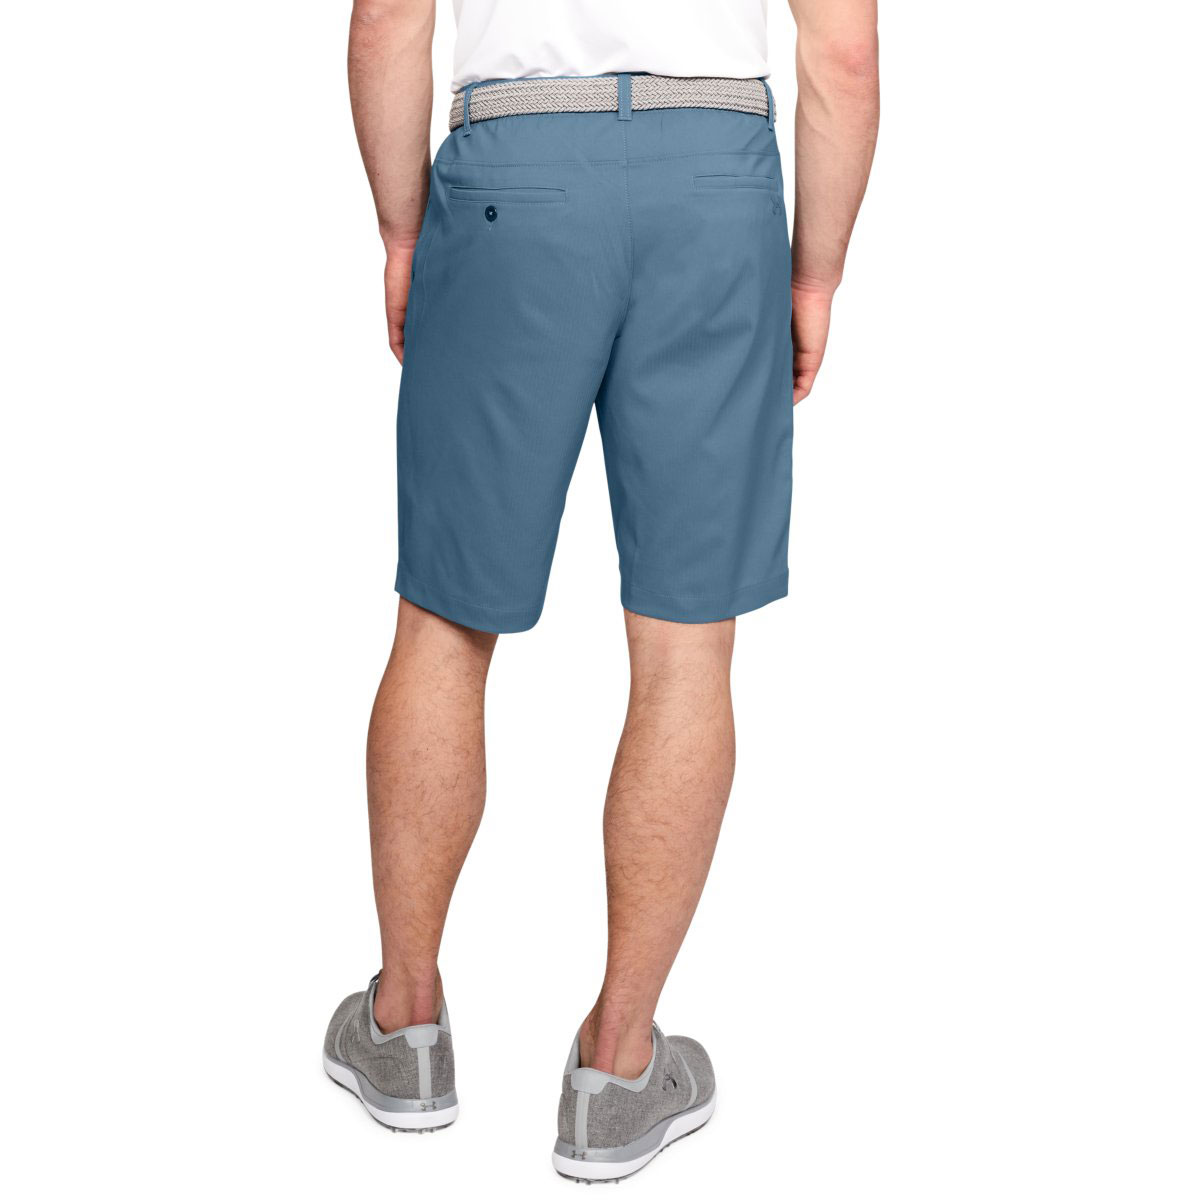 Under-Armour-Mens-Takeover-Taper-Mid-Length-Golf-Shorts-42-OFF-RRP thumbnail 10